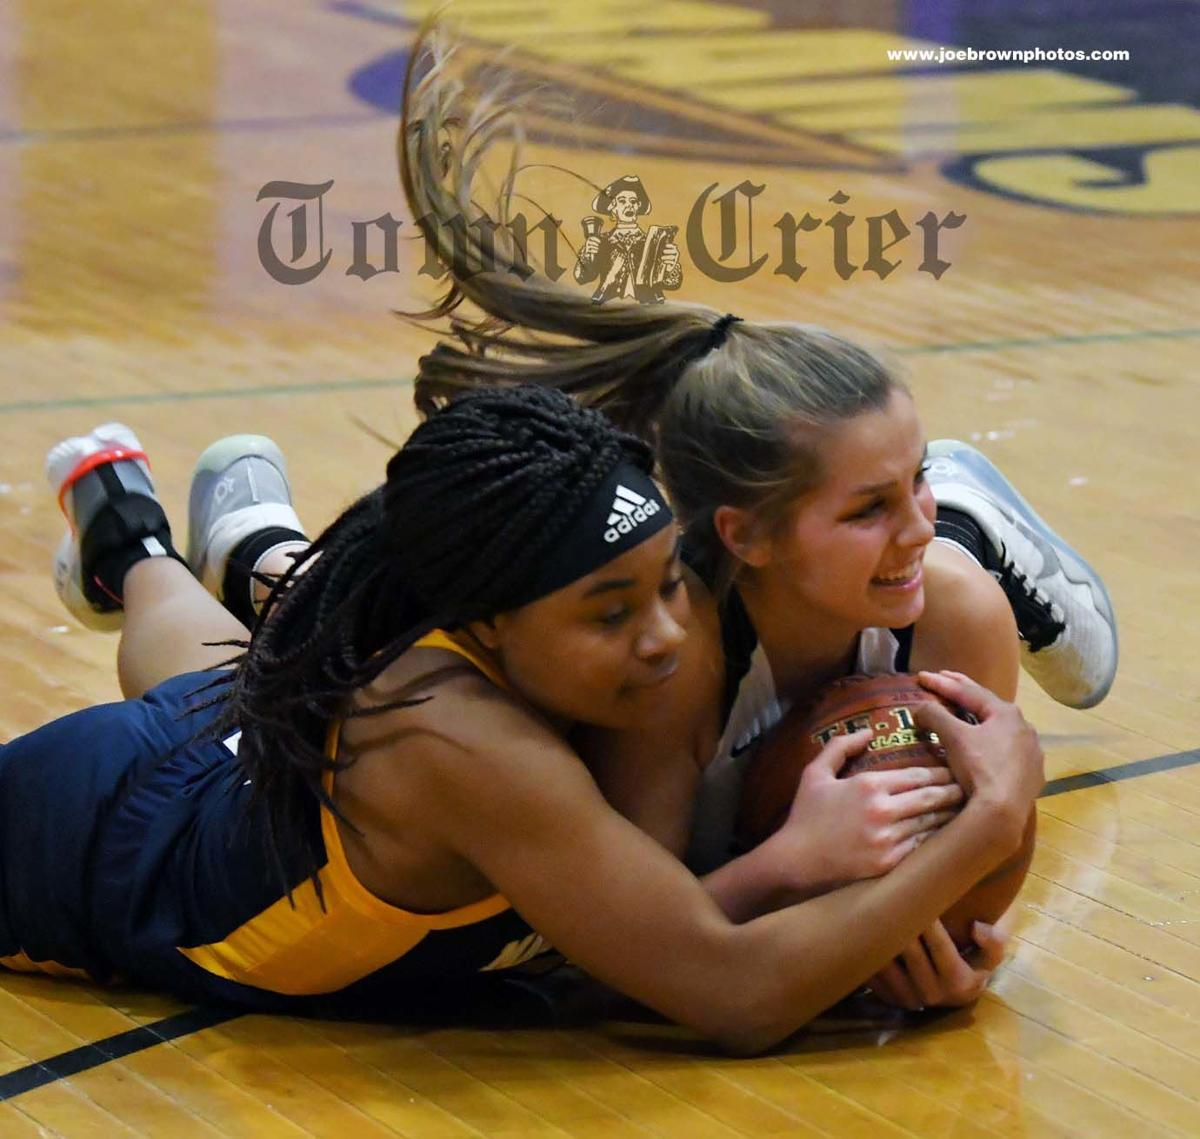 Malden Catholic's Andrea Turner, left, and Shawsheen's Shelby Bourdeau fight for the ball